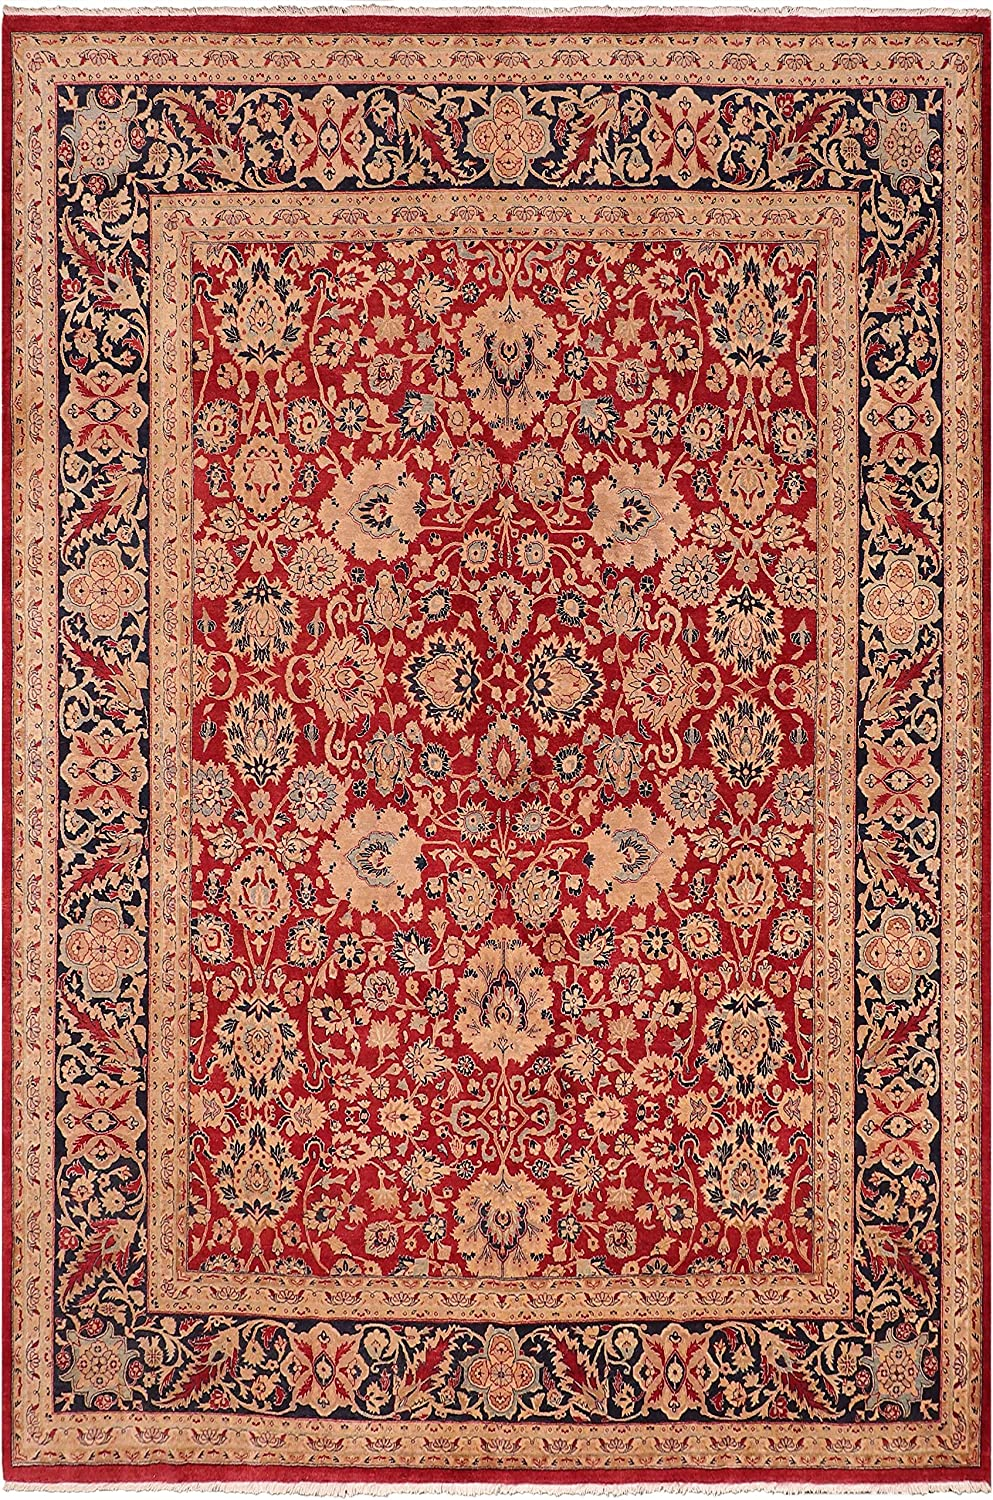 Antique Vegetable Dyed Mahal Jeanne Red Ranking Fort Worth Mall TOP19 Wool x Blue - Rug 8'5''